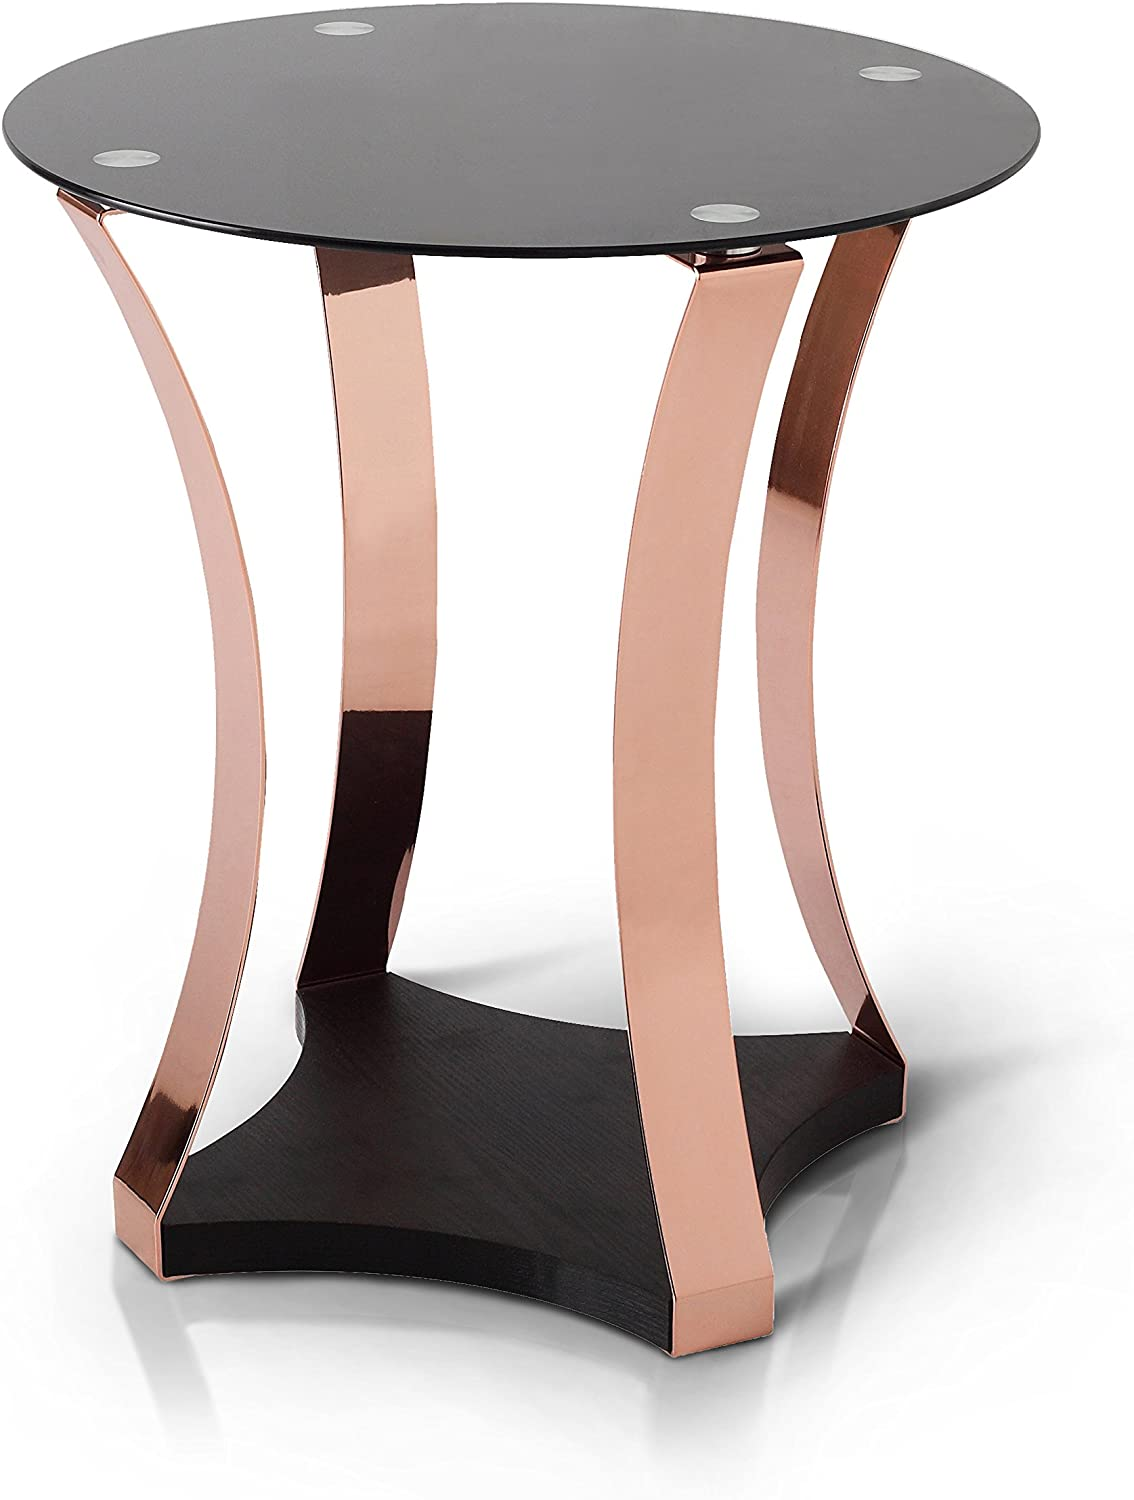 Furniture of America Faye Contemporary Round Side End Table with Center Support Beams and 4 Slim Metal Posts, Black and Rose Gold